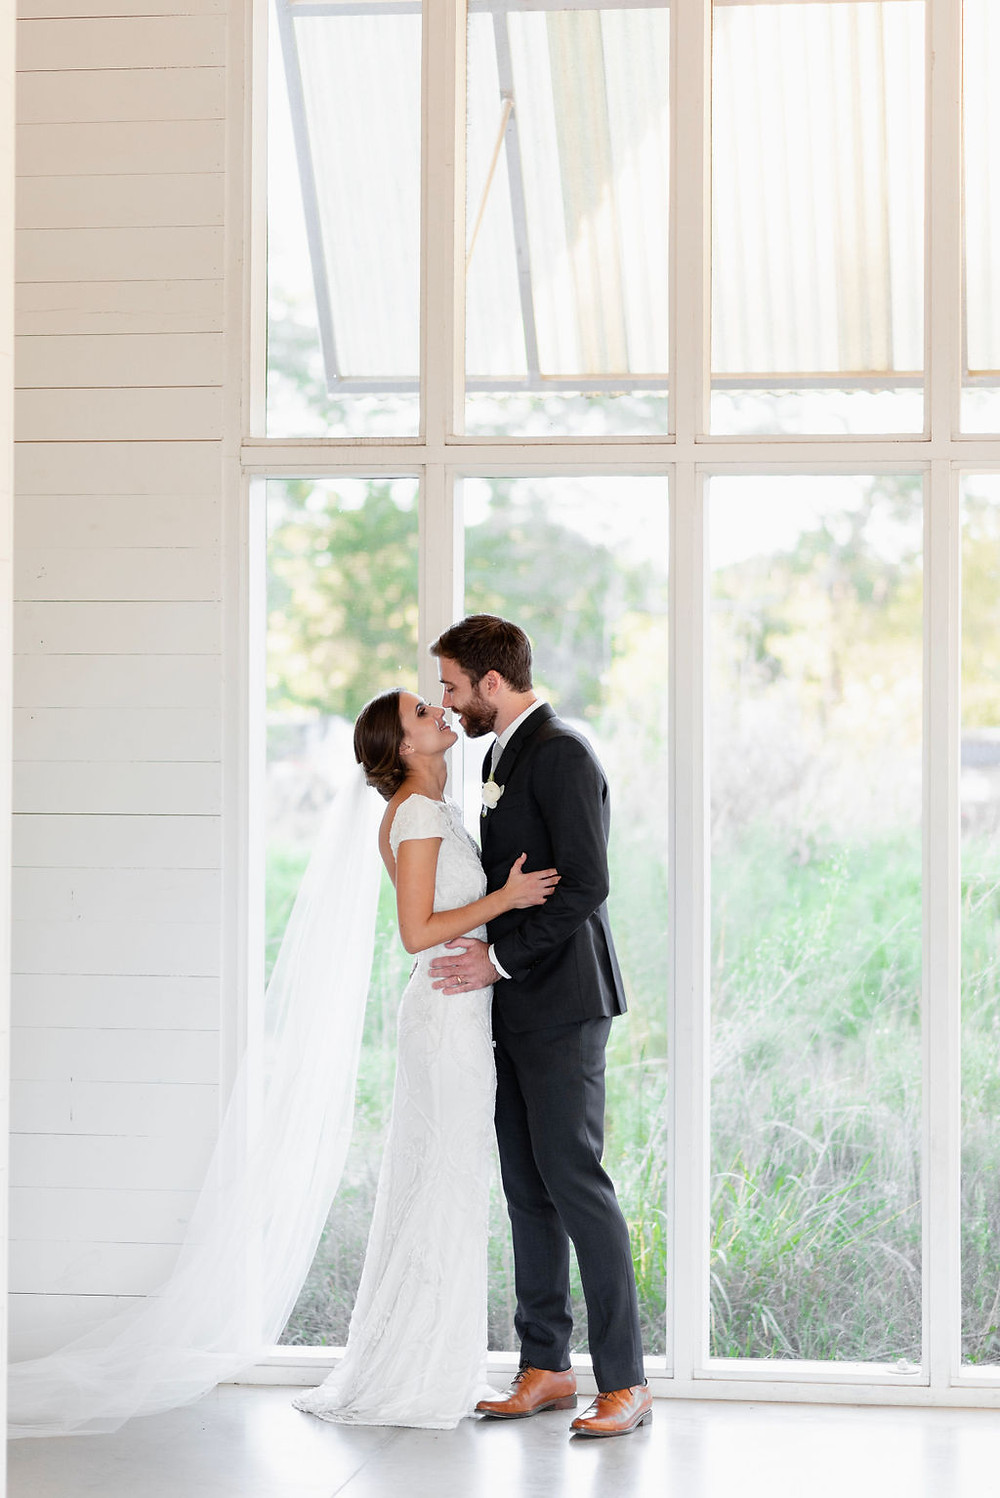 bride and groom posing with their faces almost touching in front of tall windows. beautiful natural light